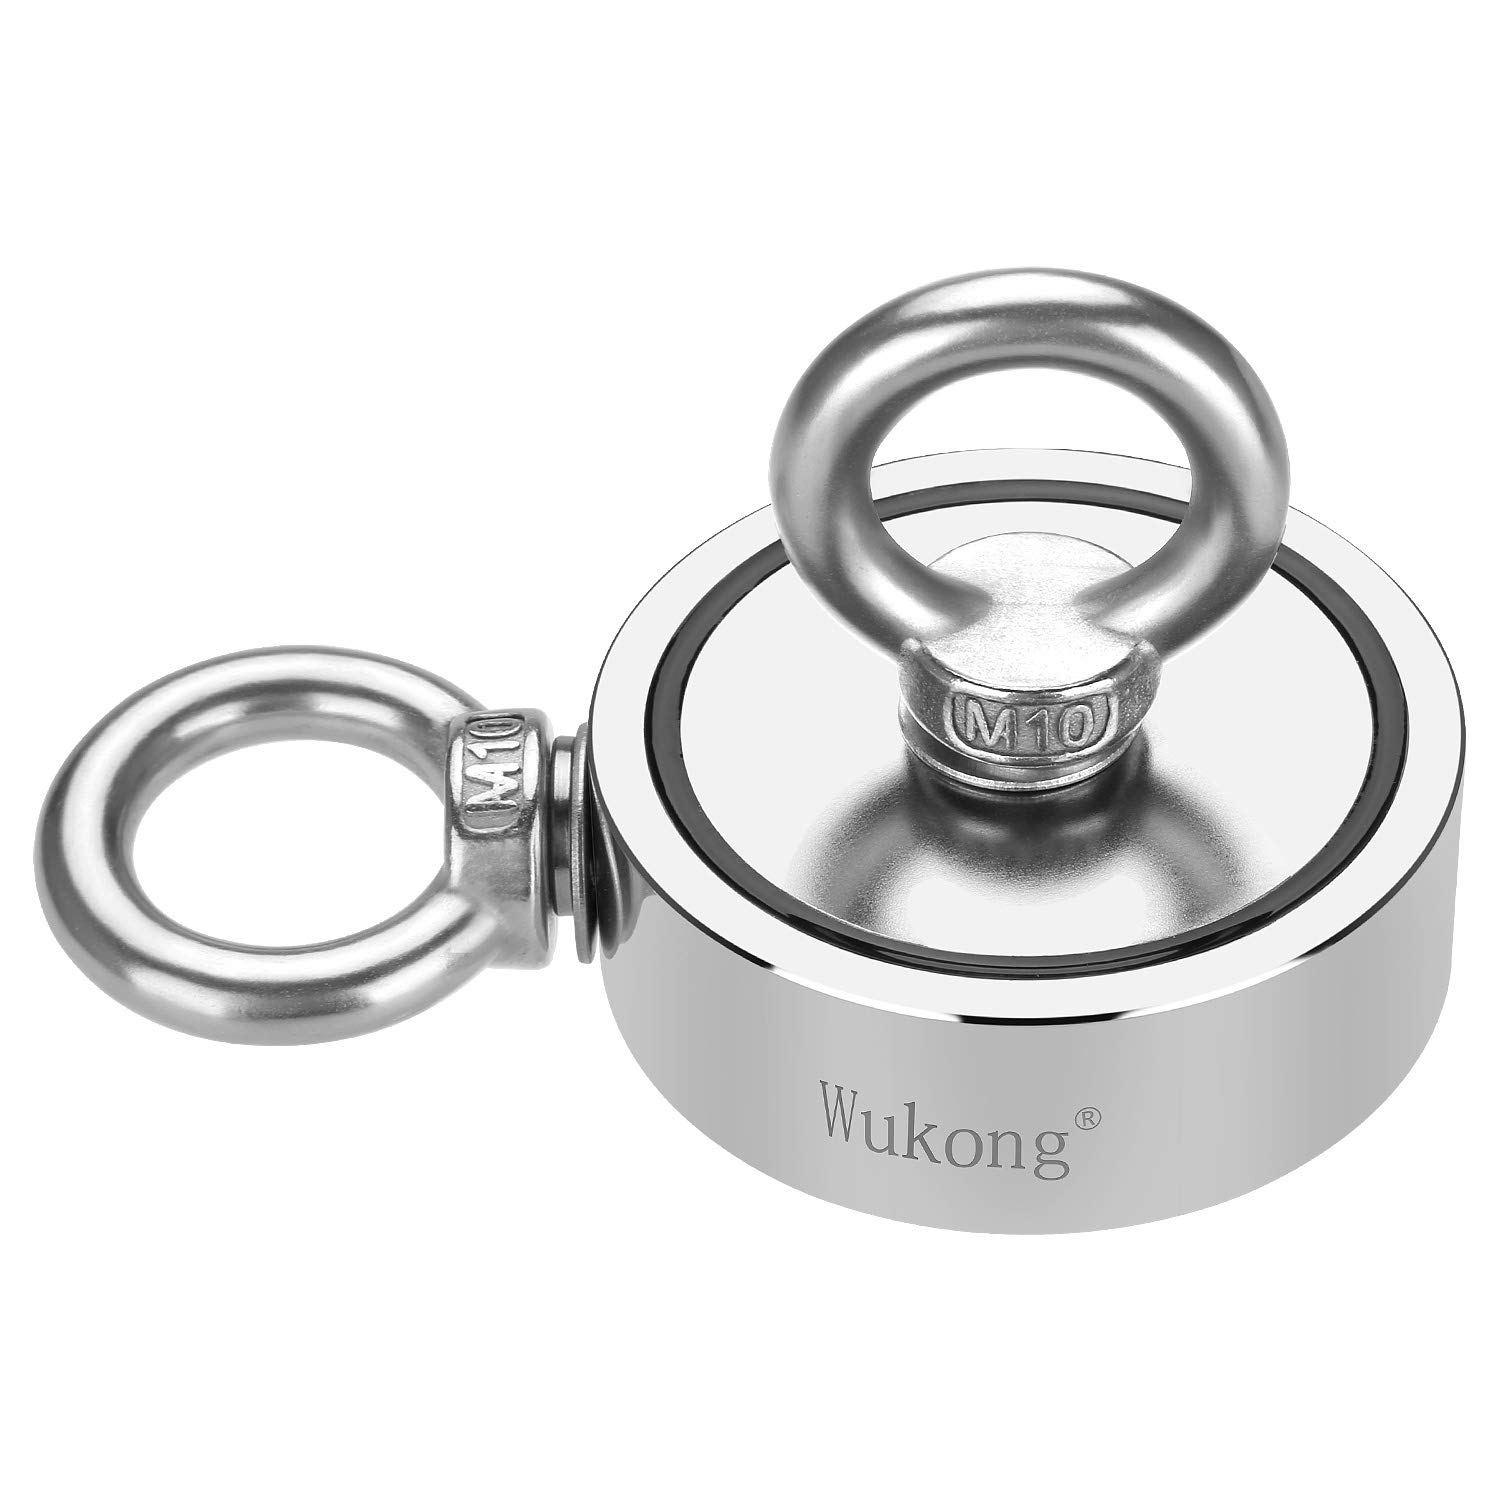 Fishing Magnet with 66ft Rope & Glove, Wukong 760LB Pulling Force Super Strong Neodymium Magnet with Heavy Duty Rope & Carabiner for Magnet Fishing and Retrieving in River - 67mm Diameter by Wukong (Image #4)